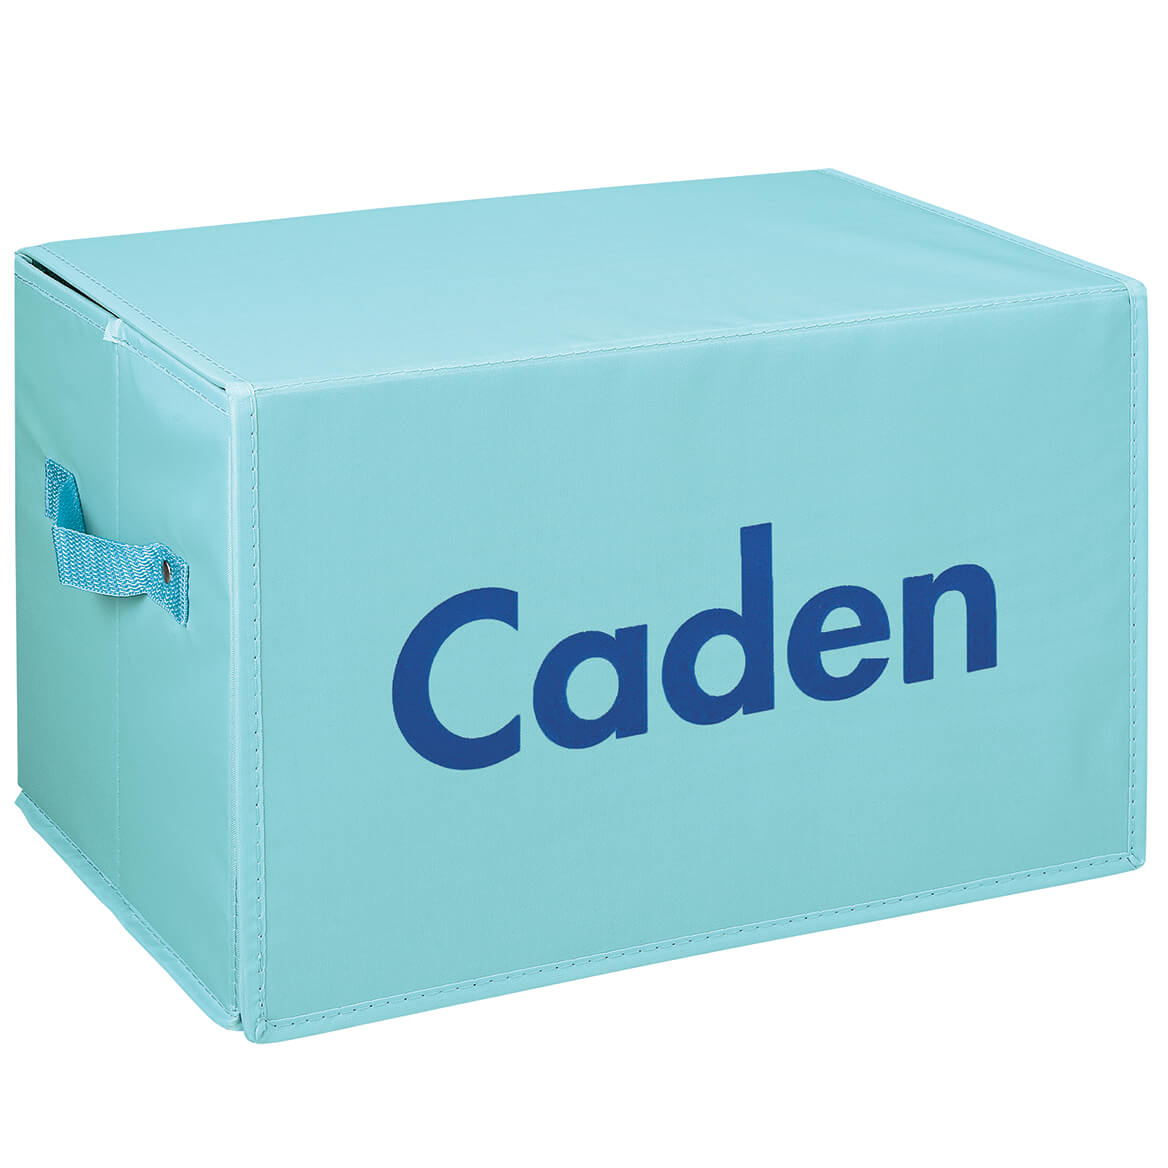 Personalized Foldover Toy Box with Play Mat, Blue Garage-369229